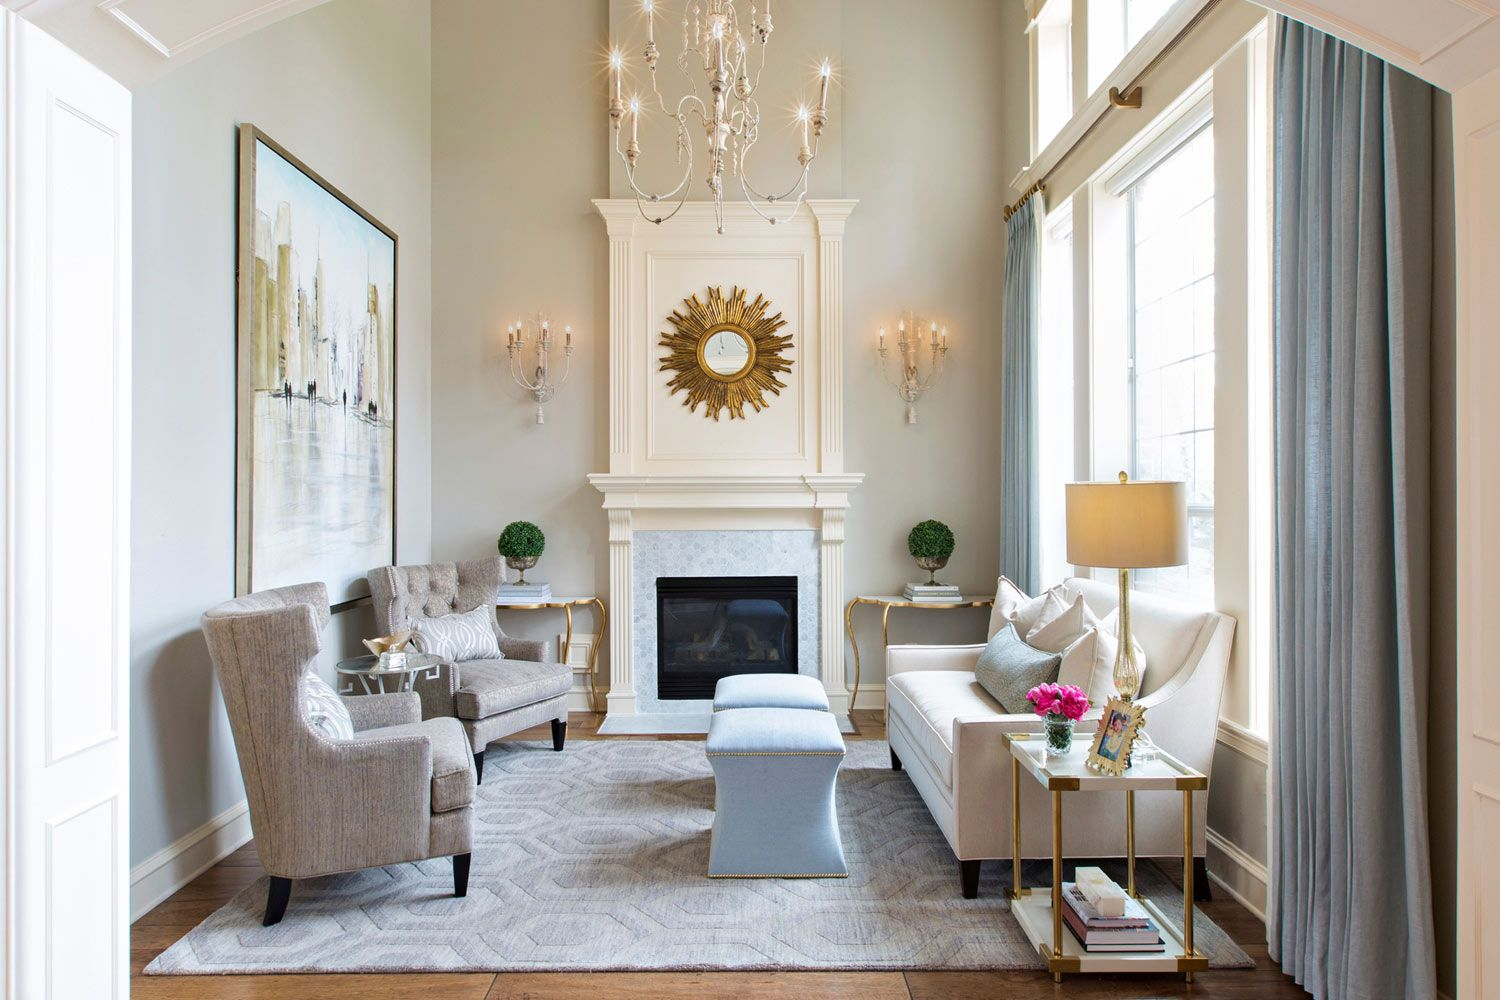 Located In The Woodlands, Texas, The Amanda Carol Interiors Design Studio  Is A Full